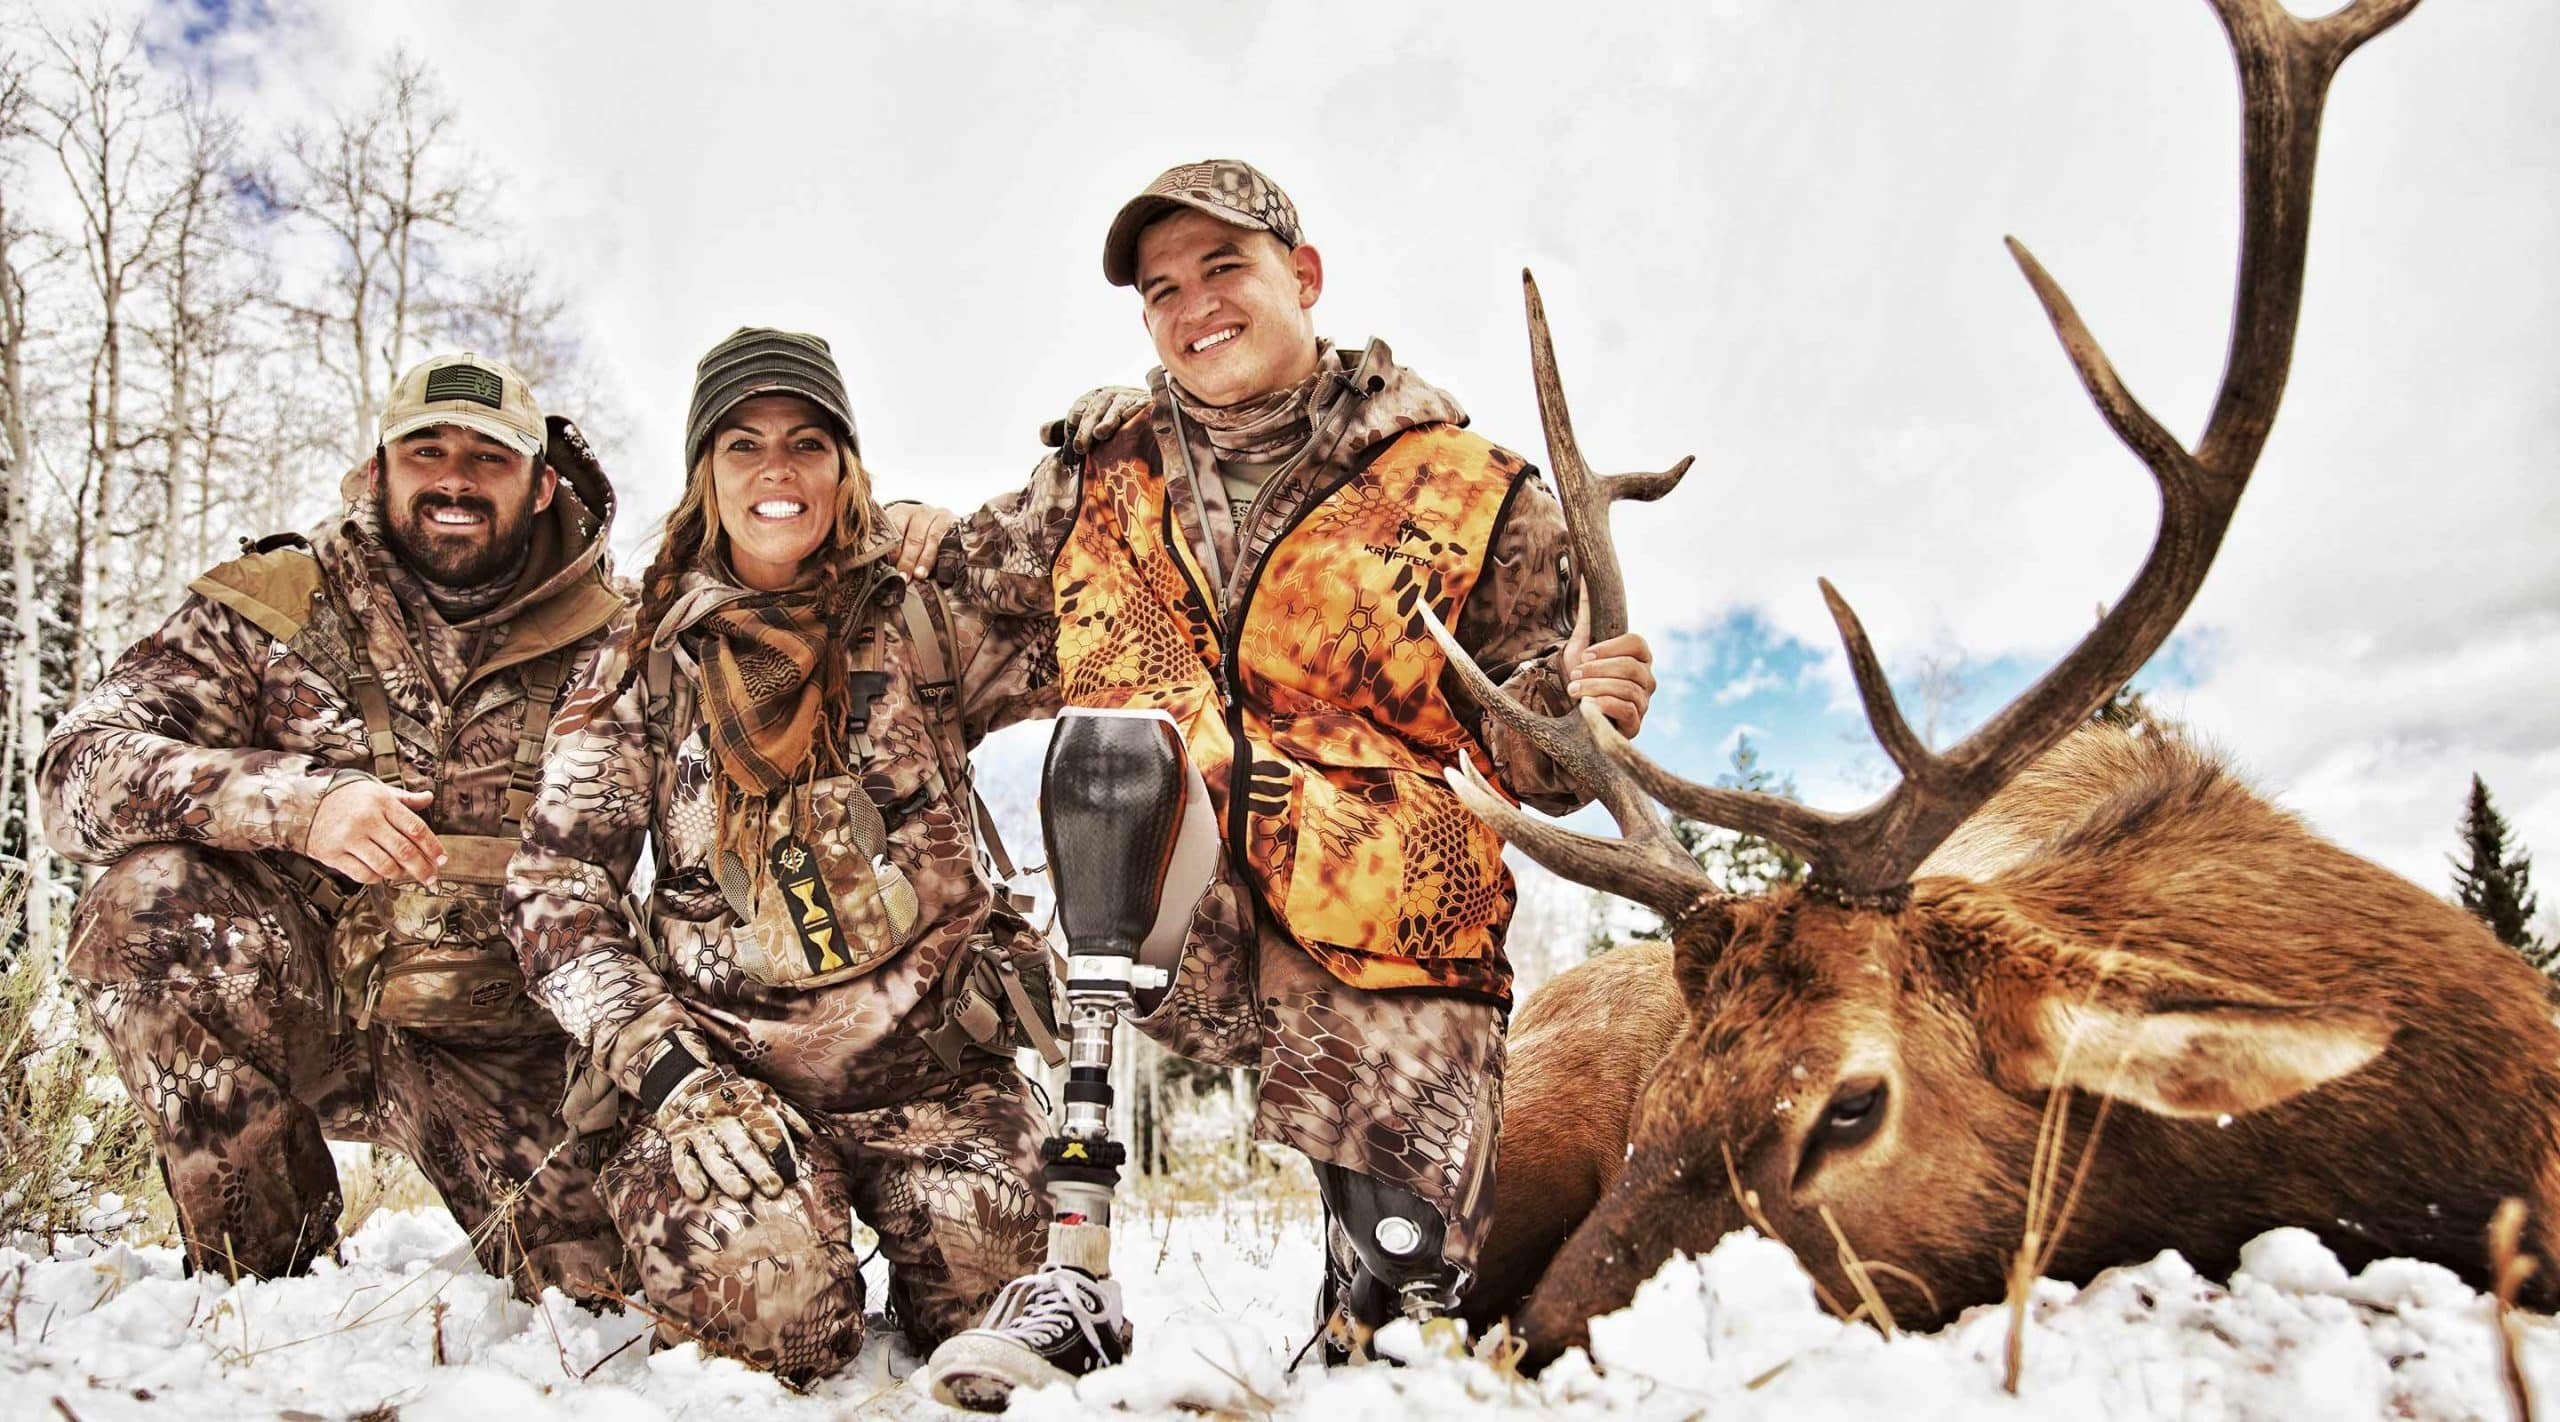 Jana Waller and friends with a late-season bull elk shot in the snow in Montana with former Navy SEAL Bo Reichenbach.